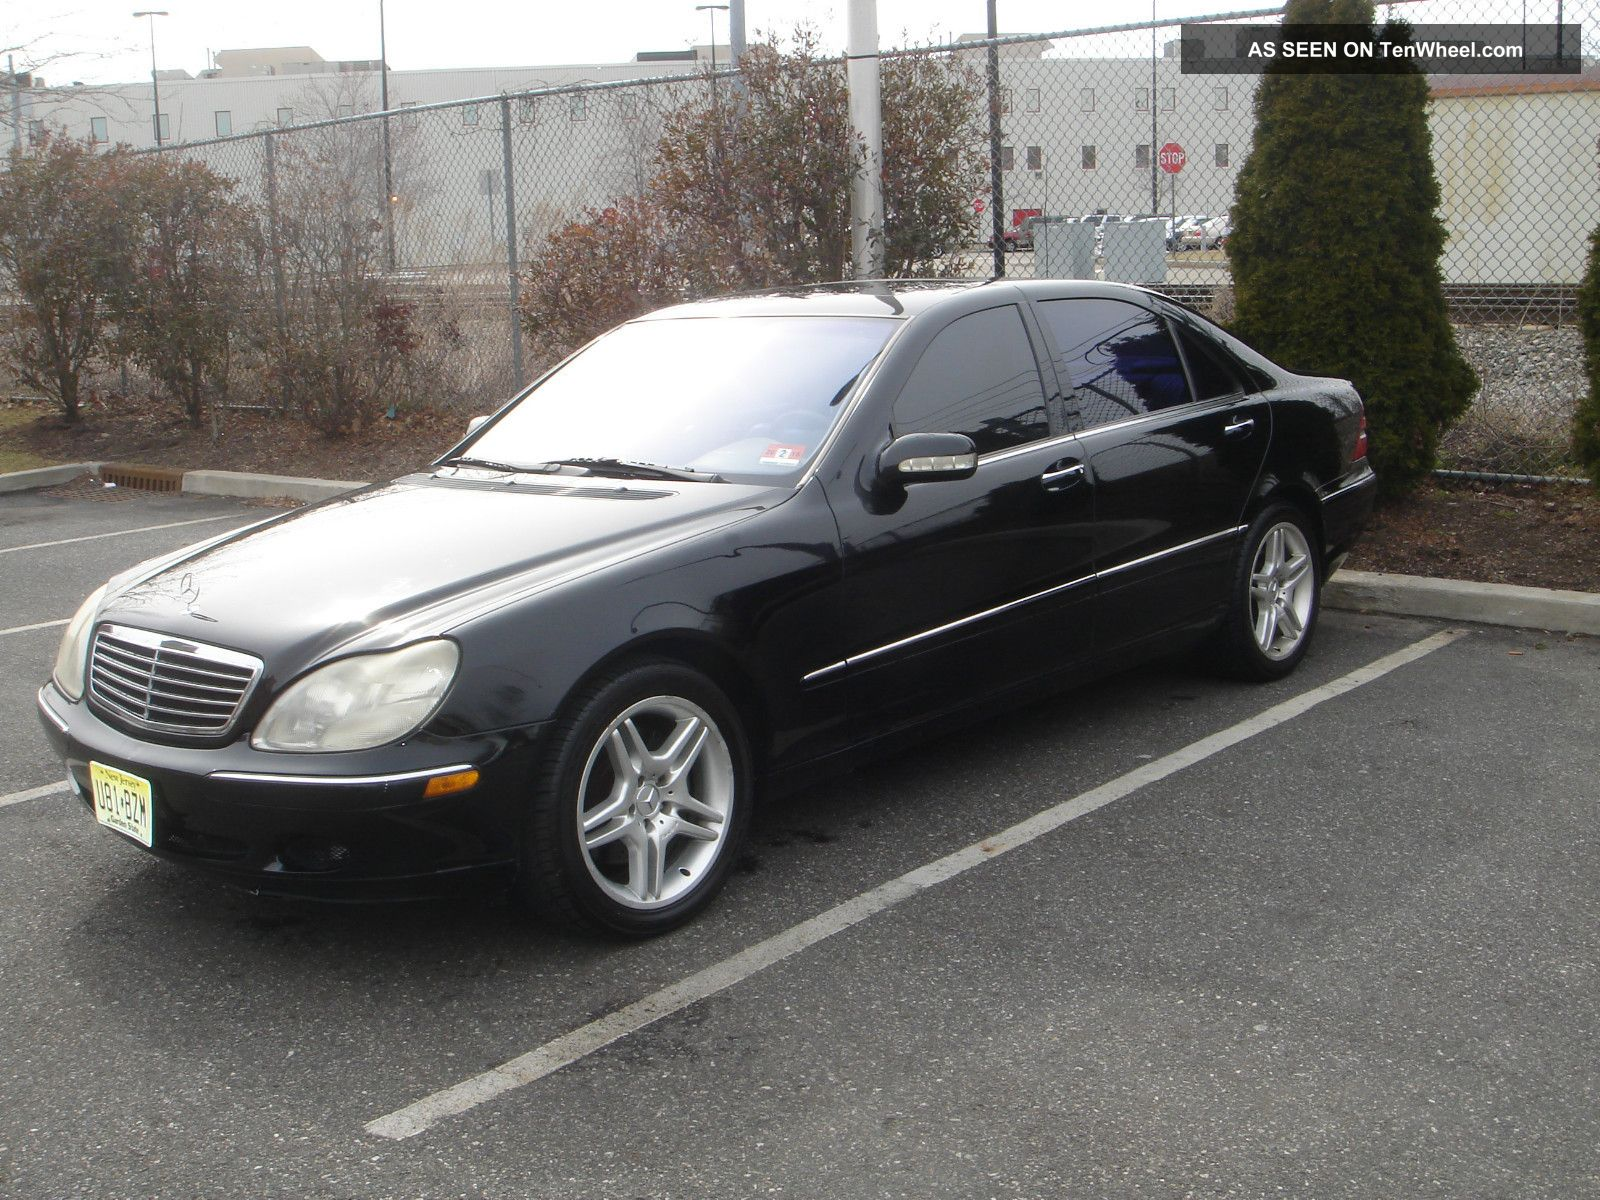 2000 mercedes benz s430 base sedan 4 door 4 3l